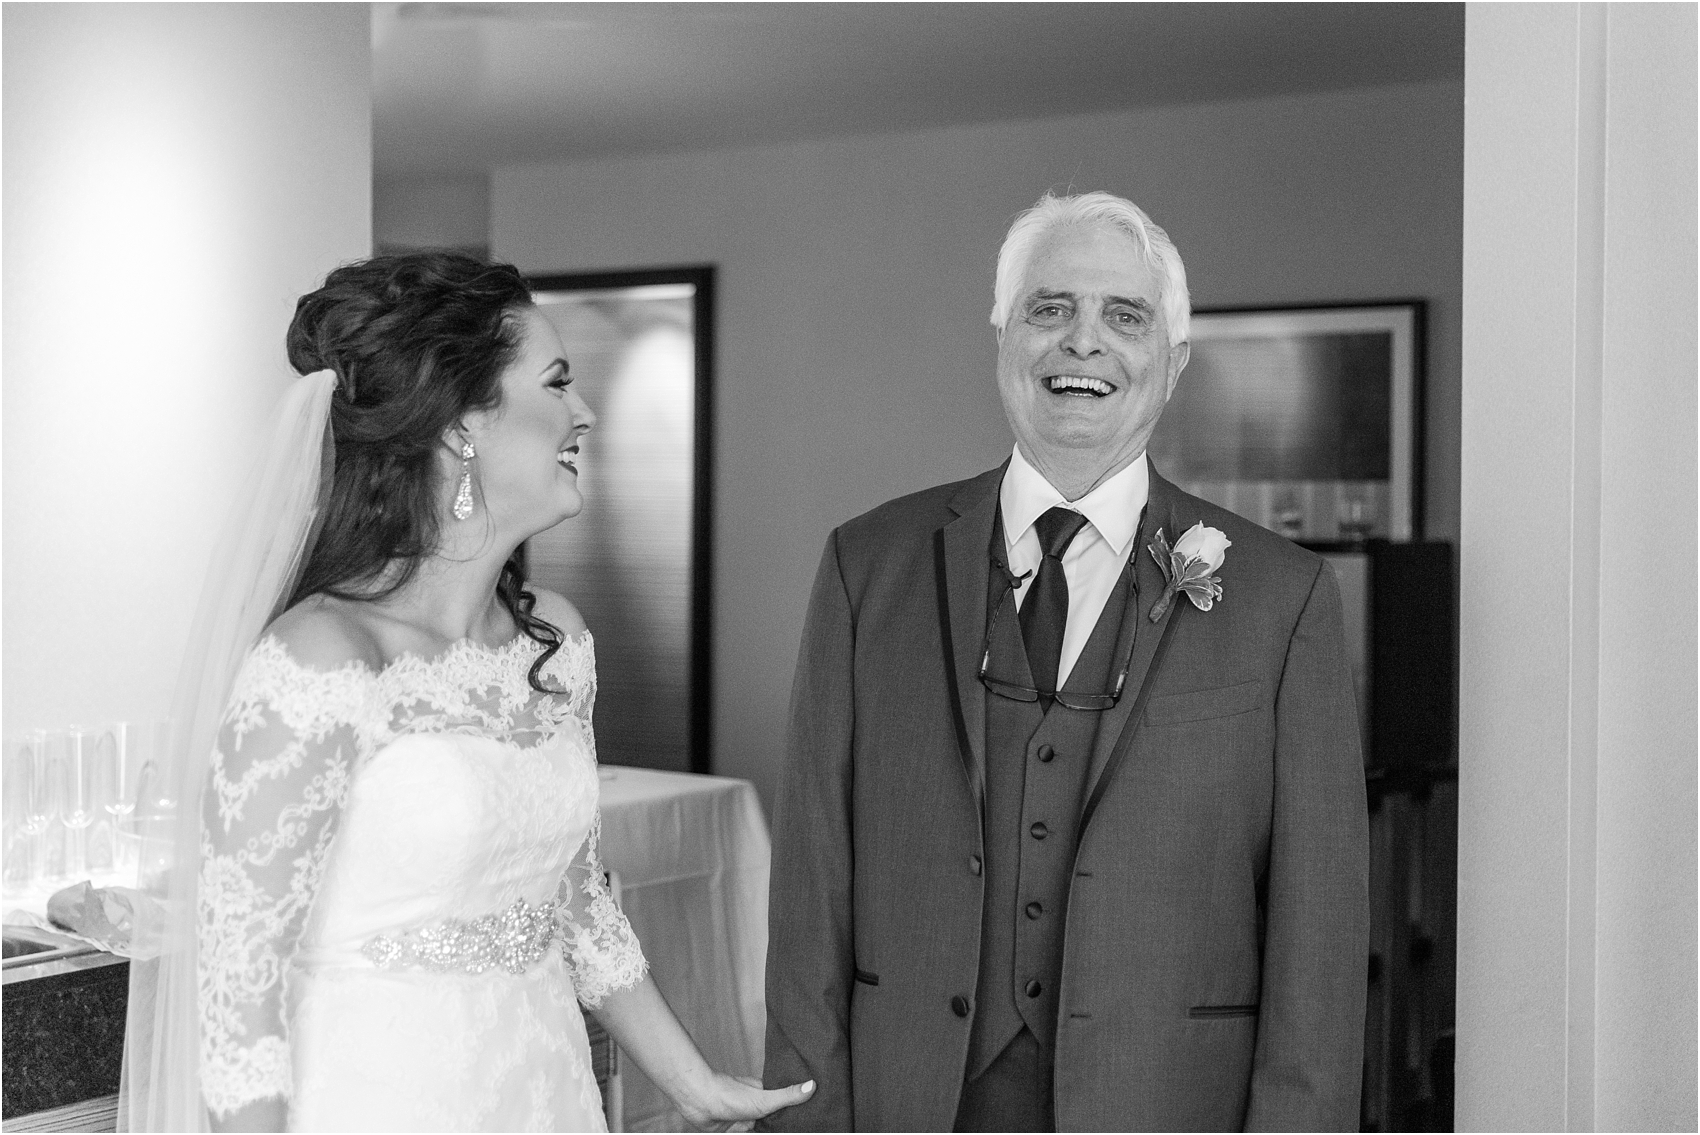 father-and-bride-share-emotional-first-look-on-wedding-day-photos-in-detroit-michigan-by-courtney-carolyn-photography_0039.jpg